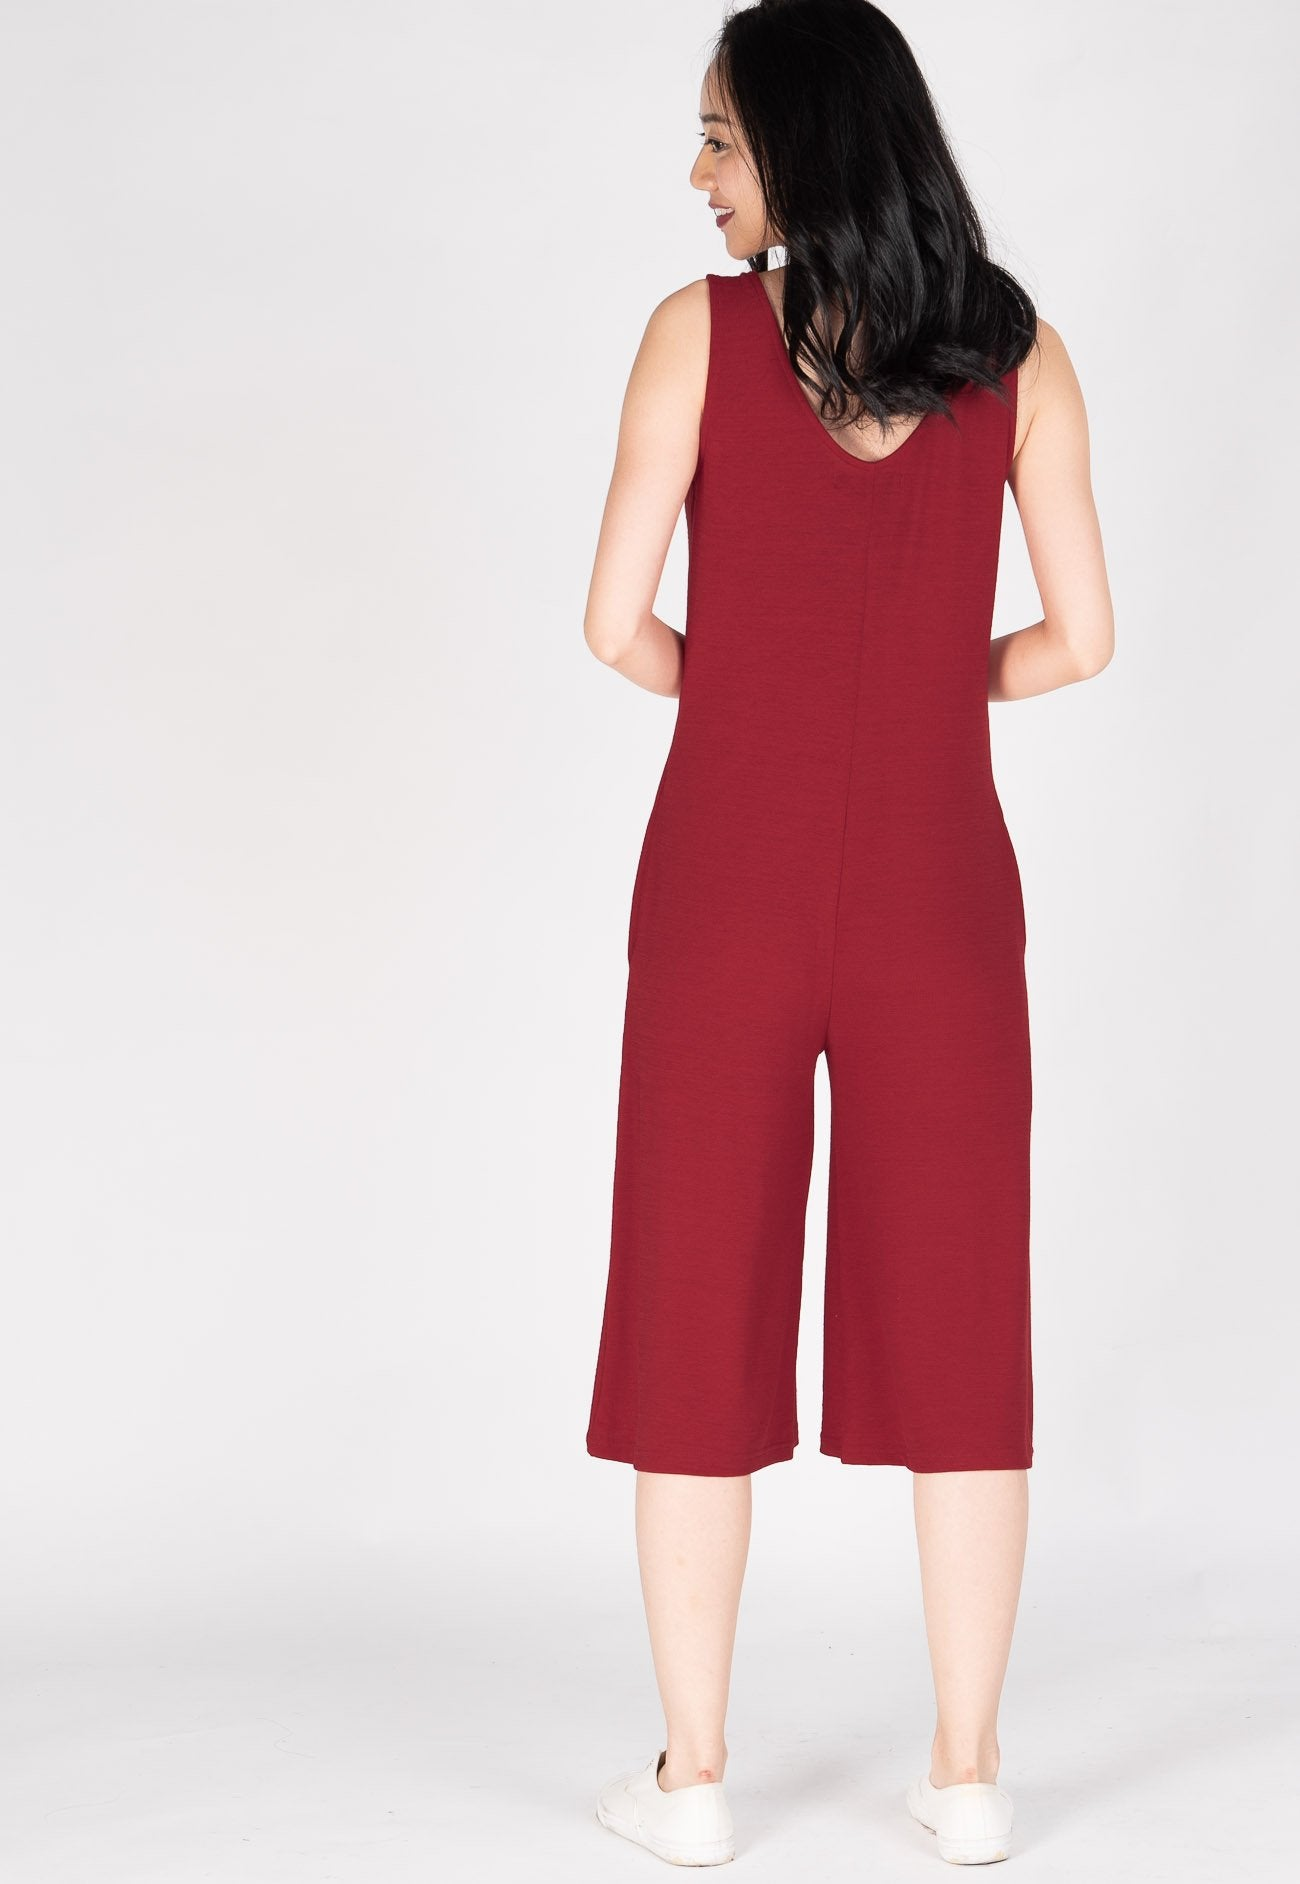 5c40a74deb24c1 ... Carefree V Neck Nursing Jumpsuit in Red by JumpEatCry - Maternity and  nursing wear